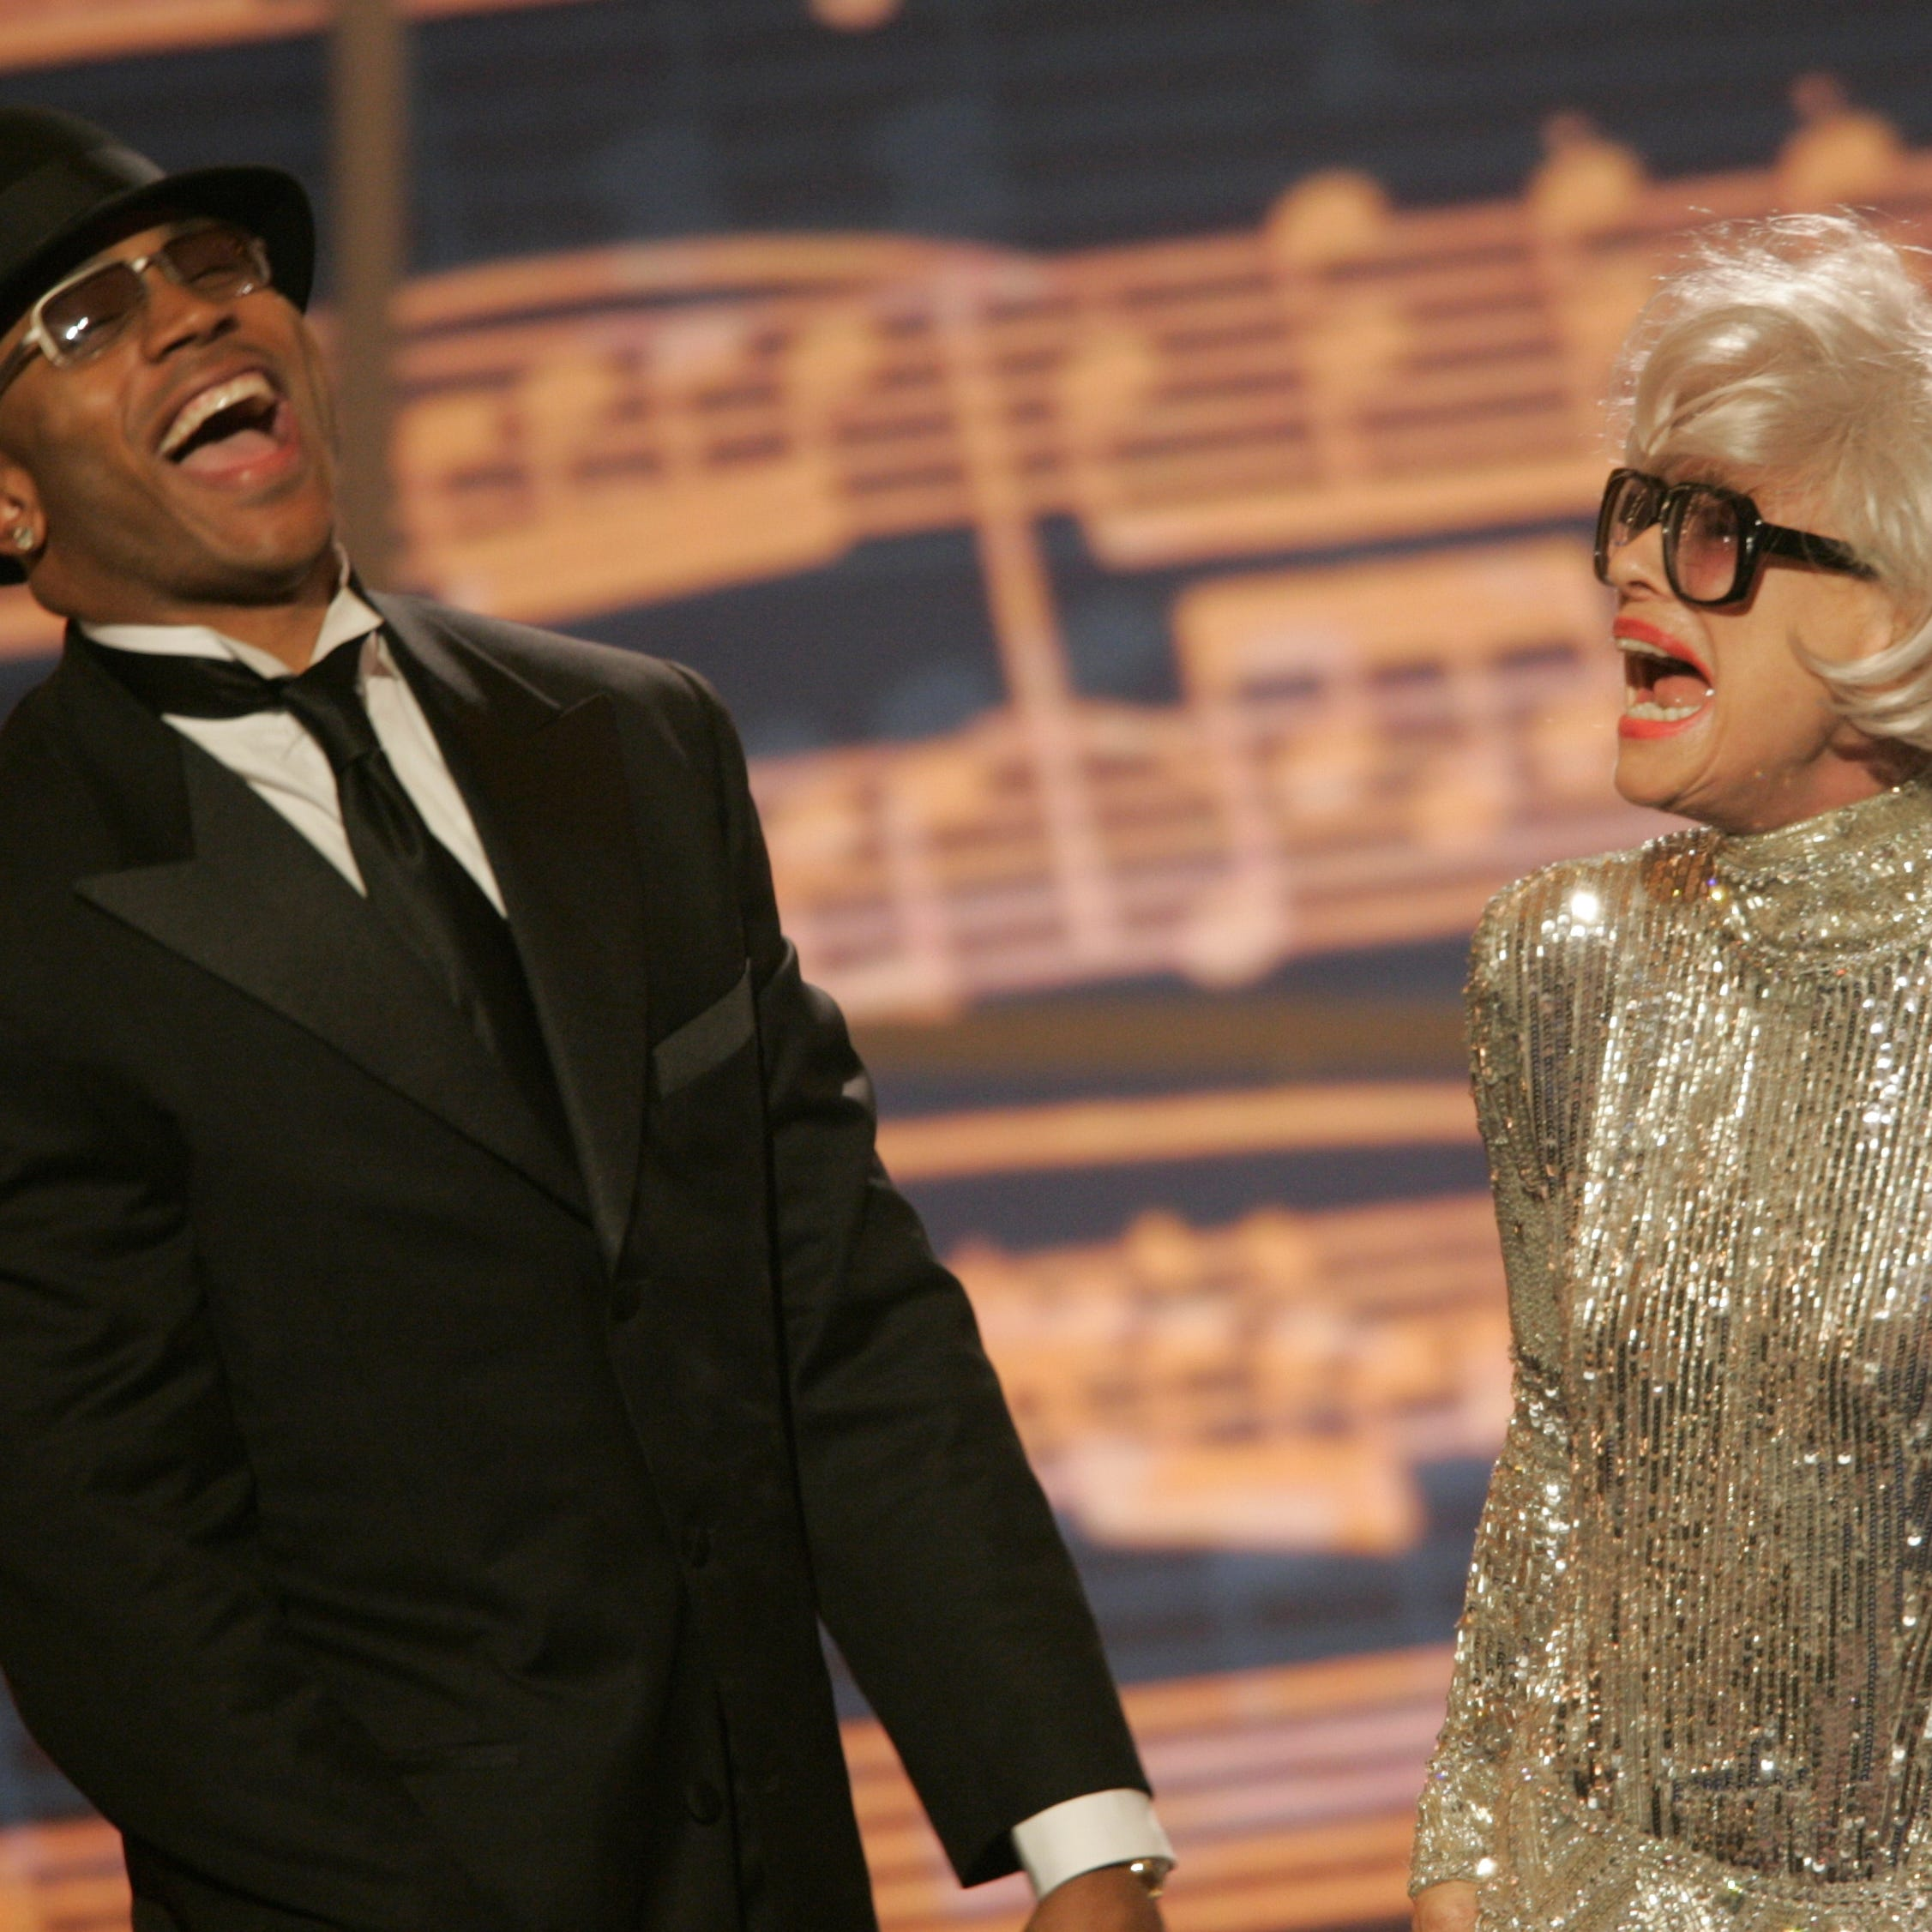 Carol Channing made her home in the valley. Over the years, she's received many local awards